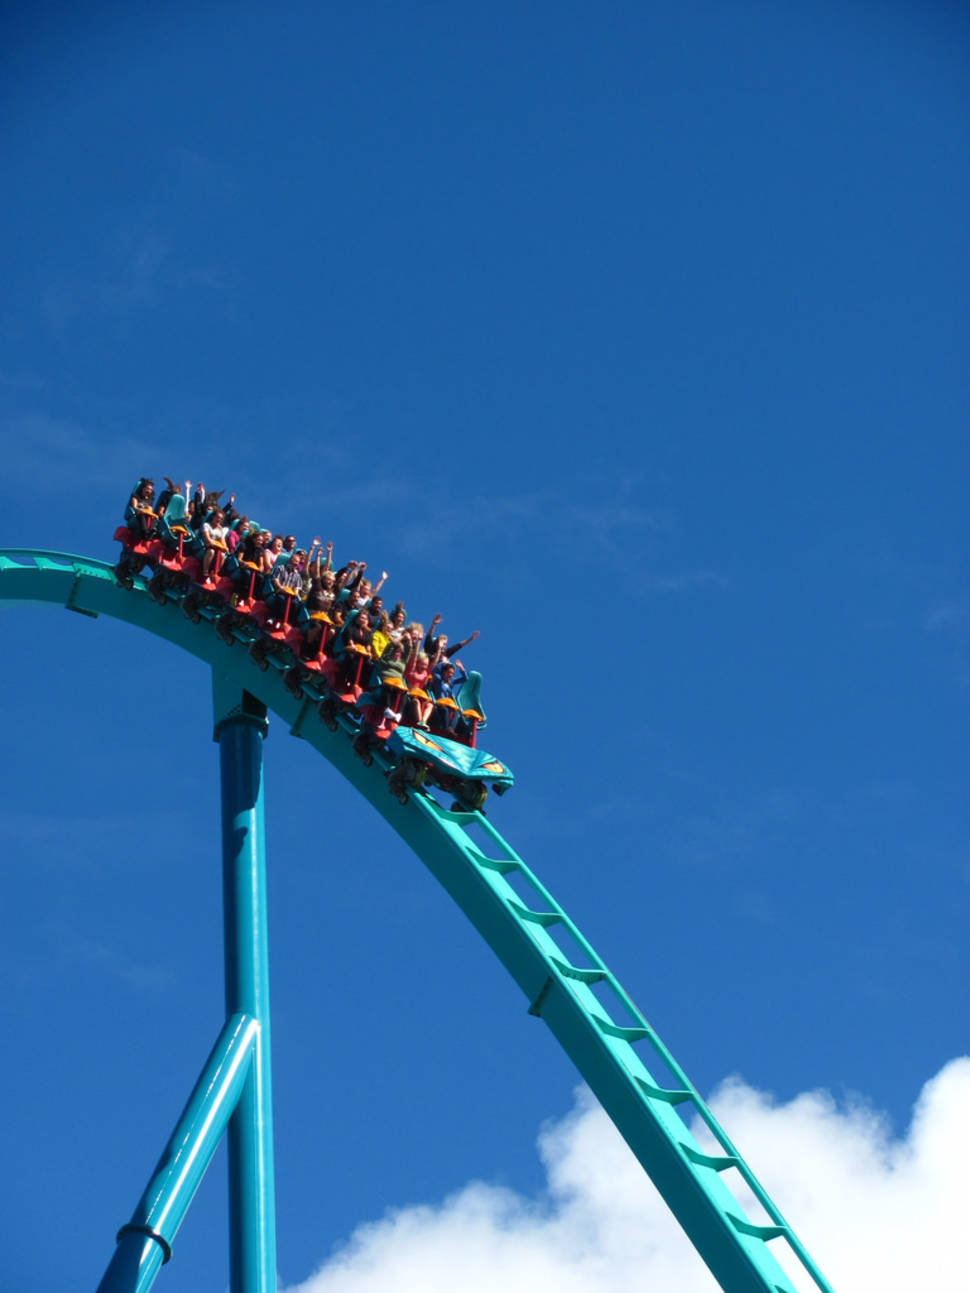 Leviathan coming back down after rocketing to the moon